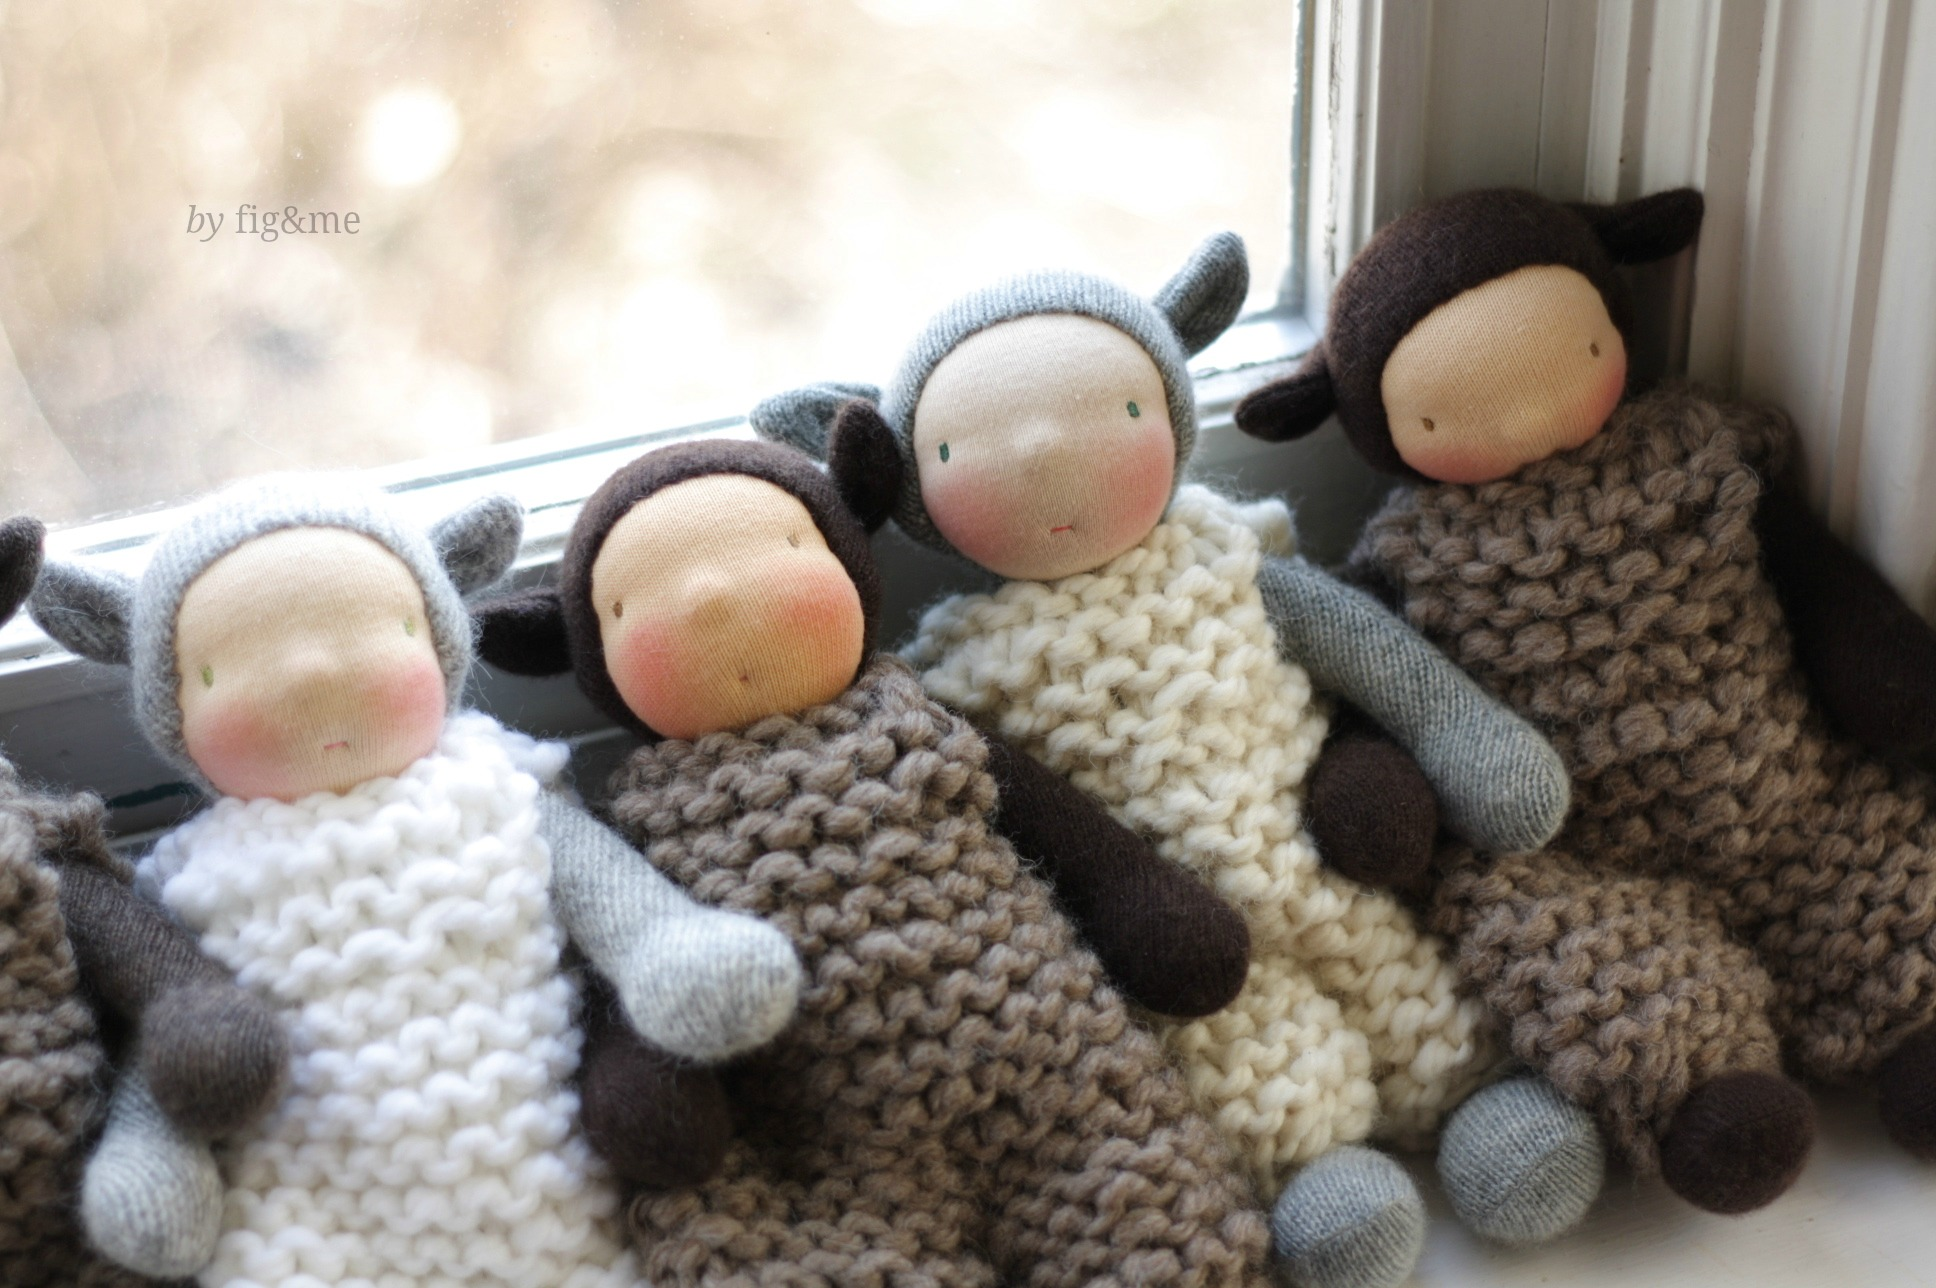 The little lambs, by Fig&me.